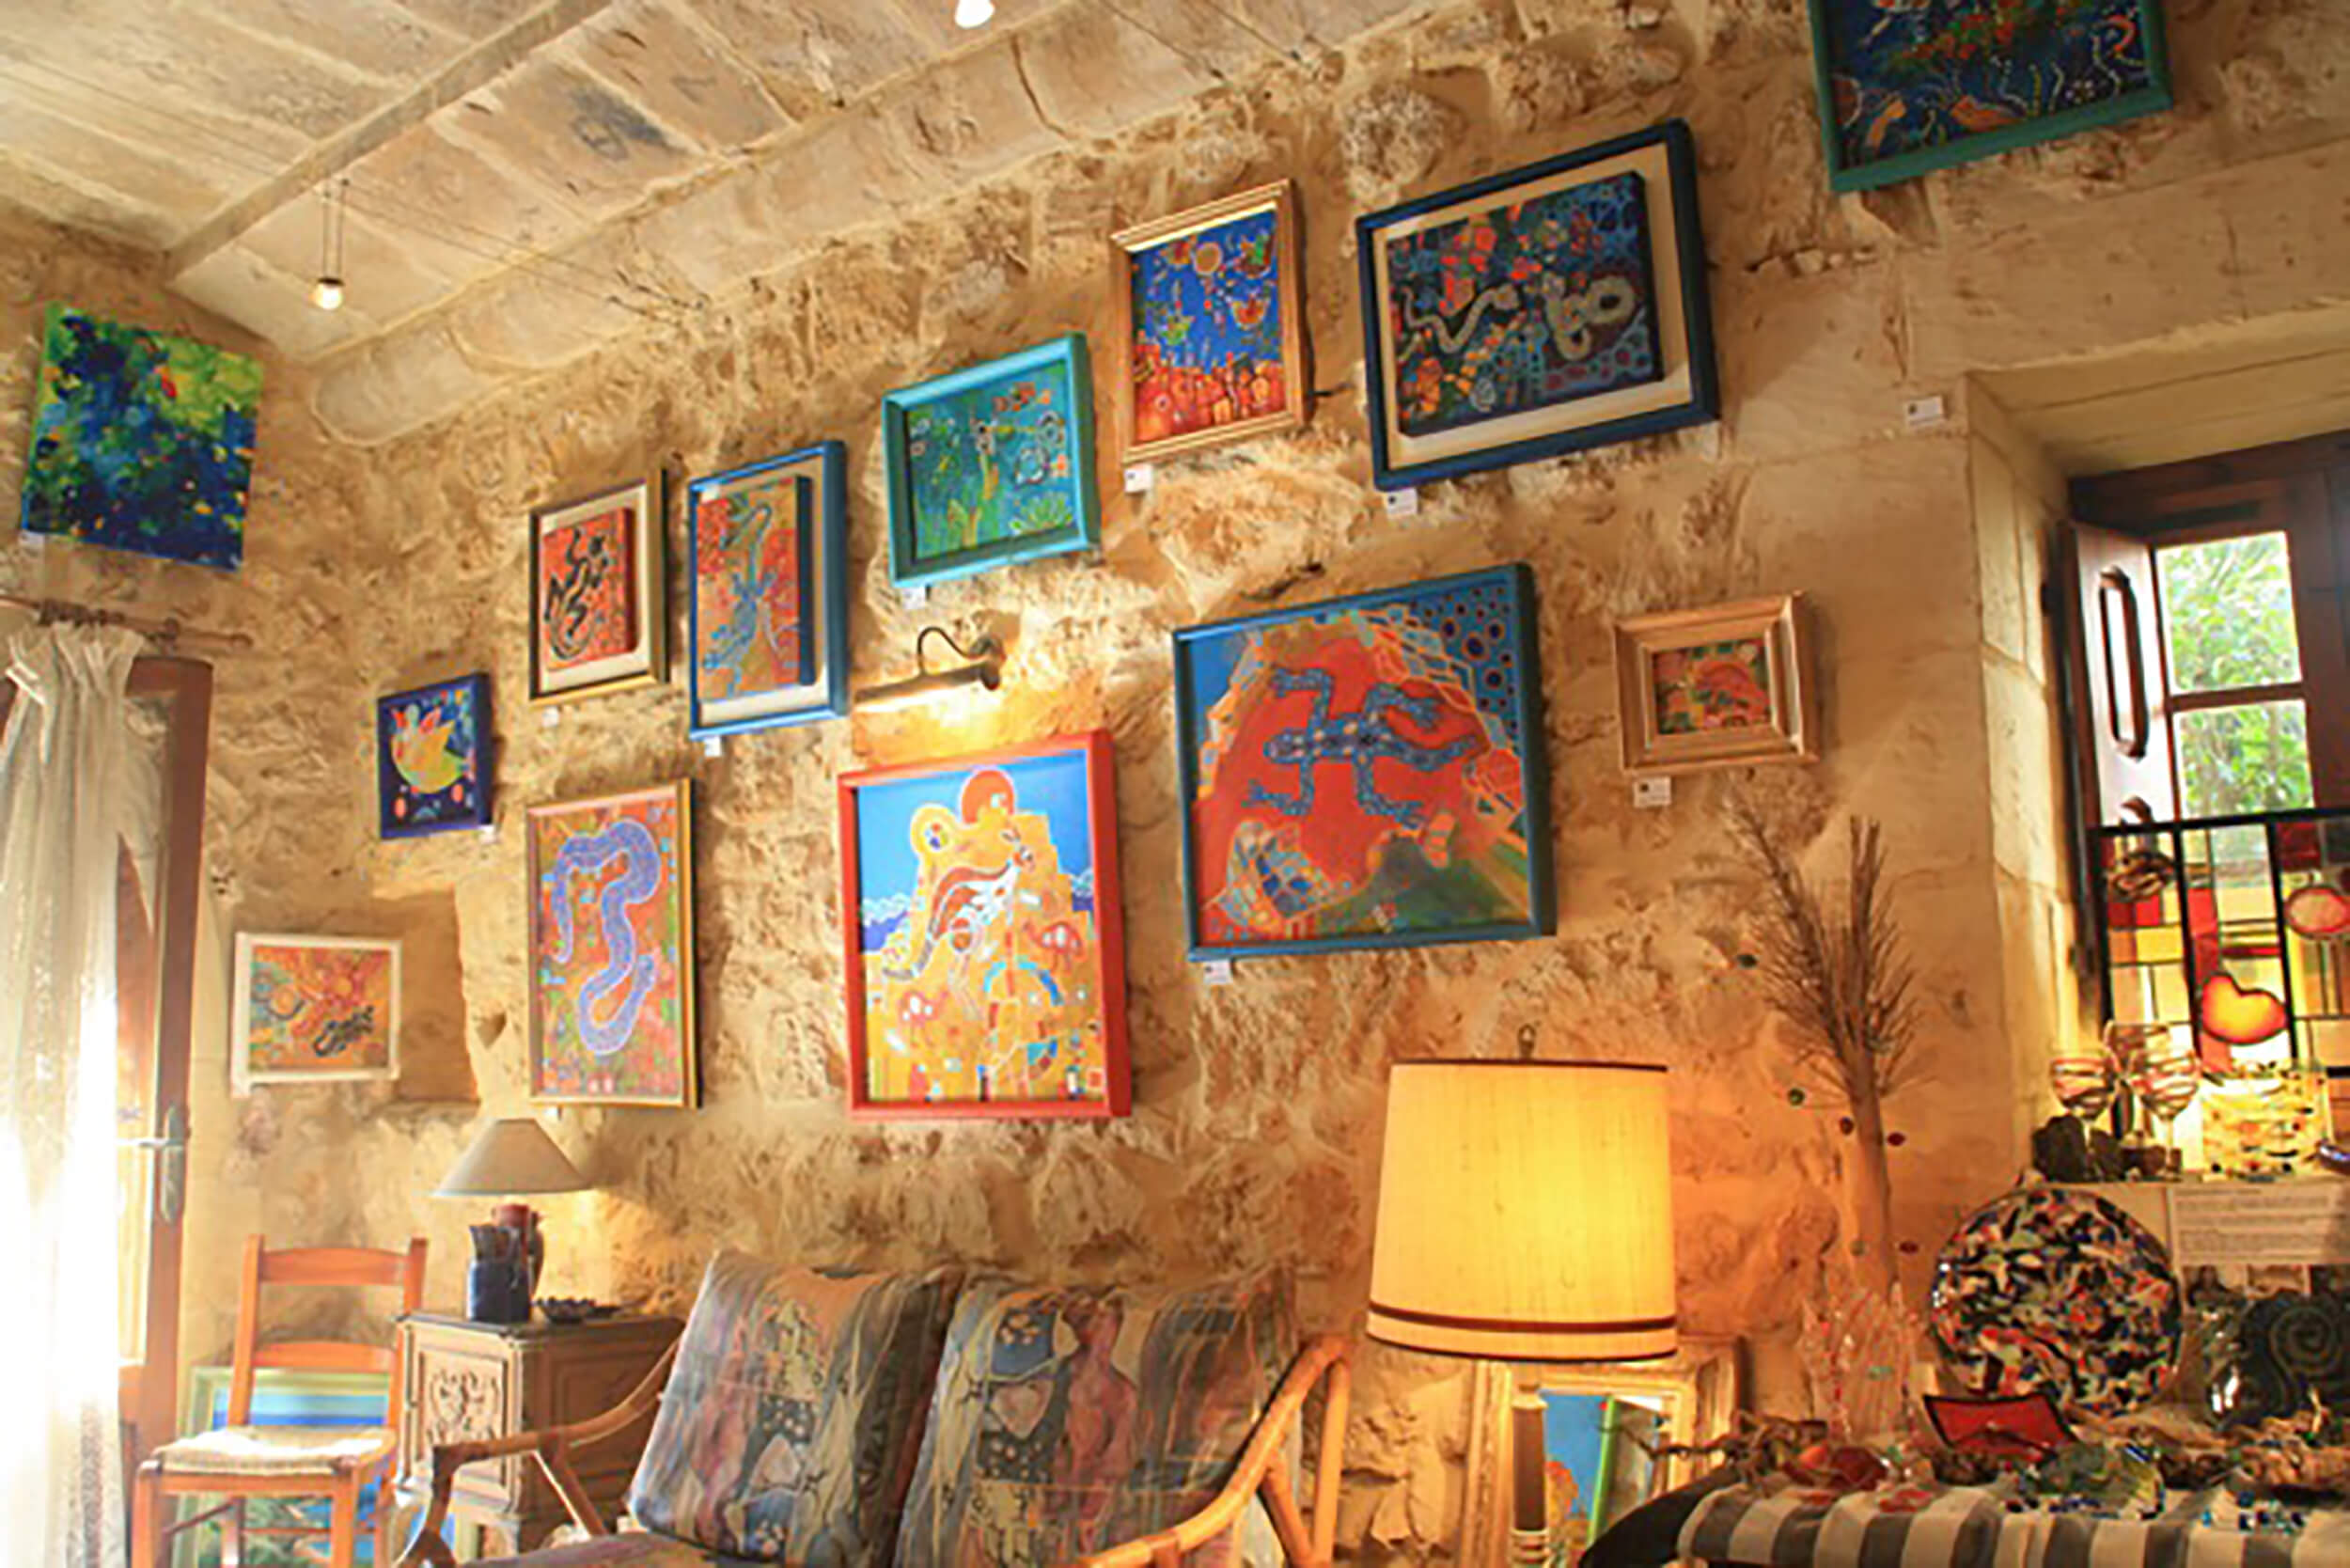 The Farmhouse Gallery at Zebbug-The Art of Blues